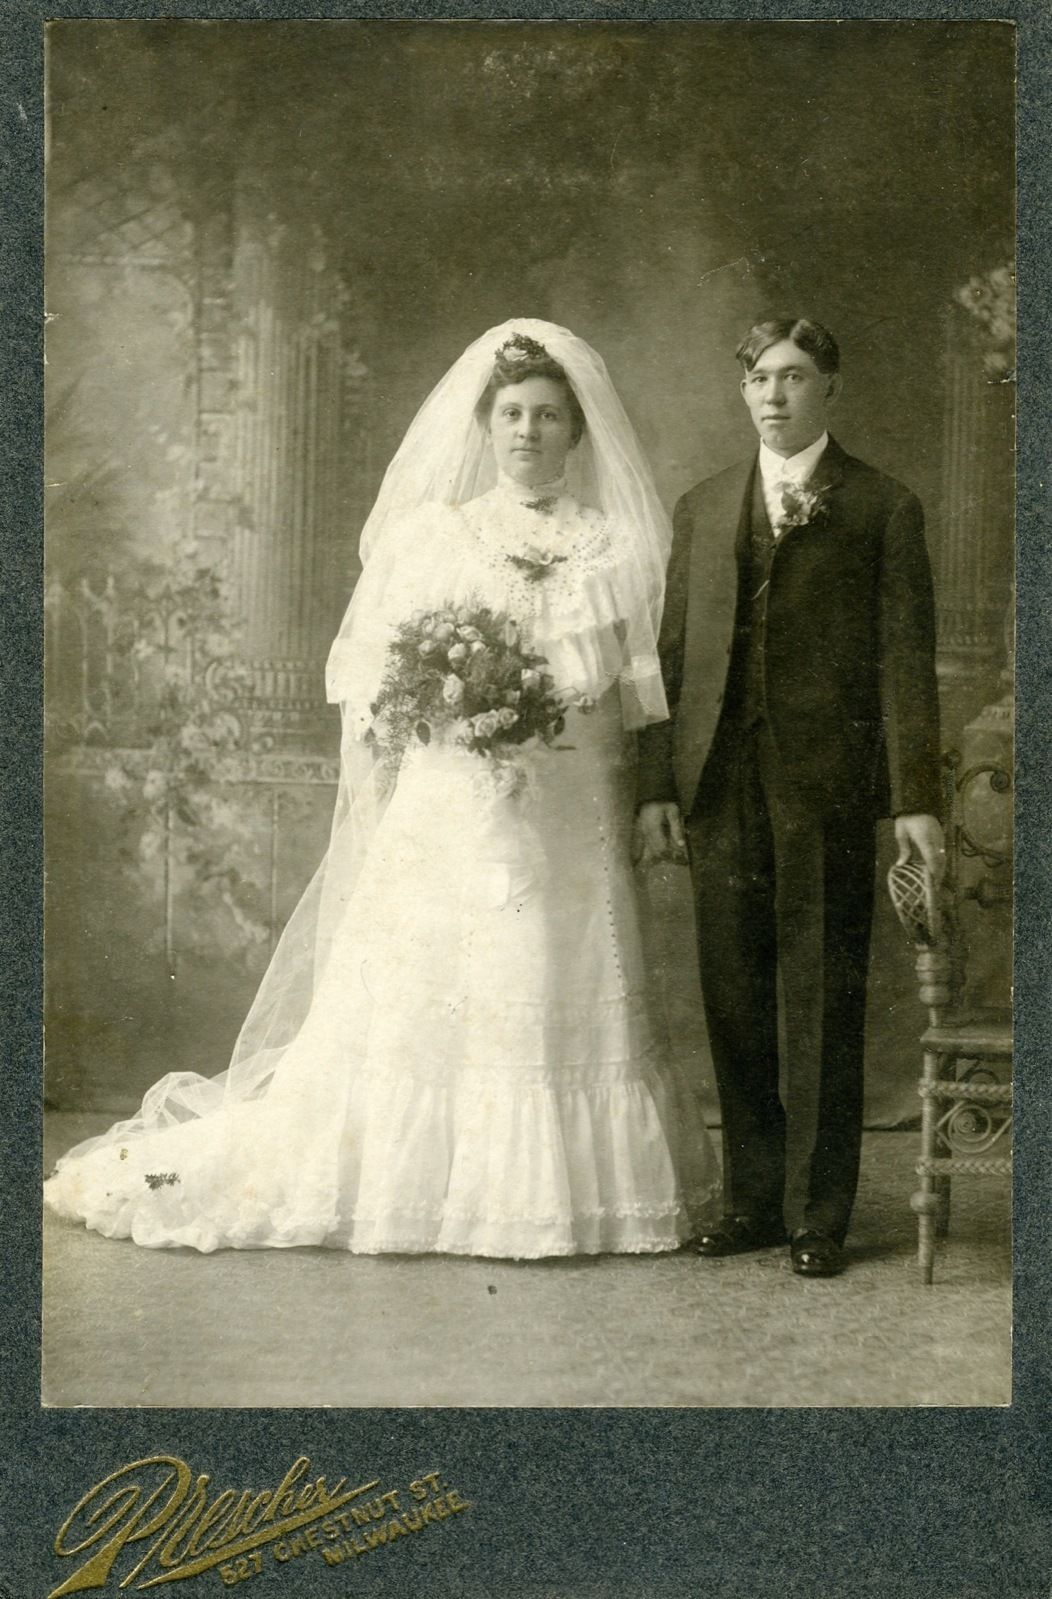 Vestiti Da Sposa 1900.1900 Wedding Photo Of Bride And Groom Vintage Wedding Photos